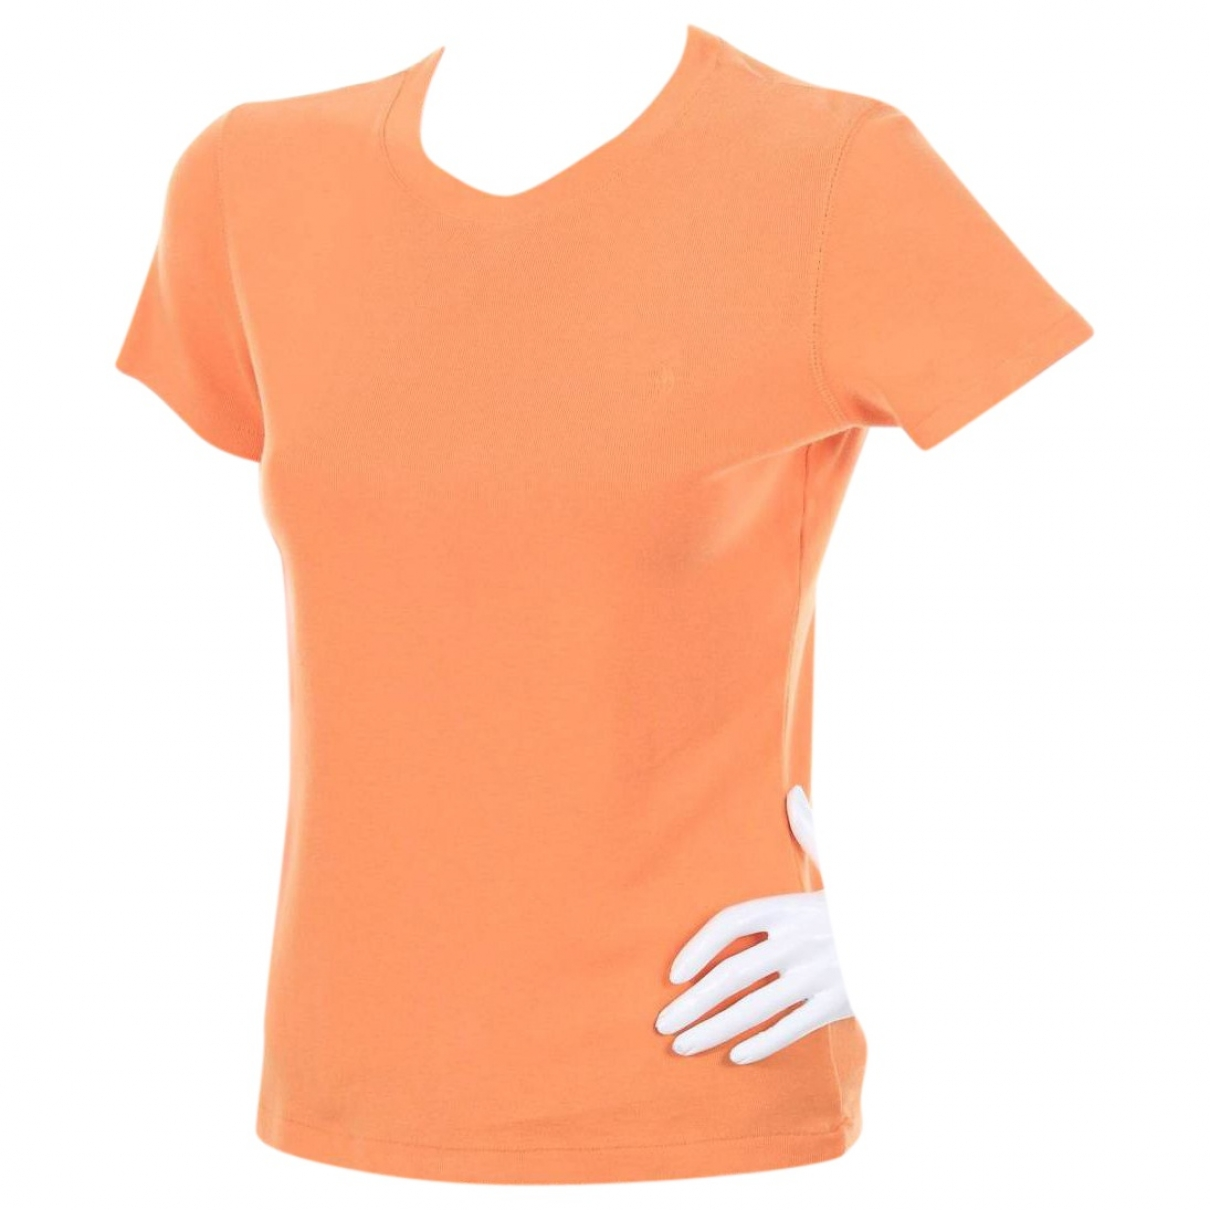 Polo Ralph Lauren \N Orange Cotton  top for Women L International